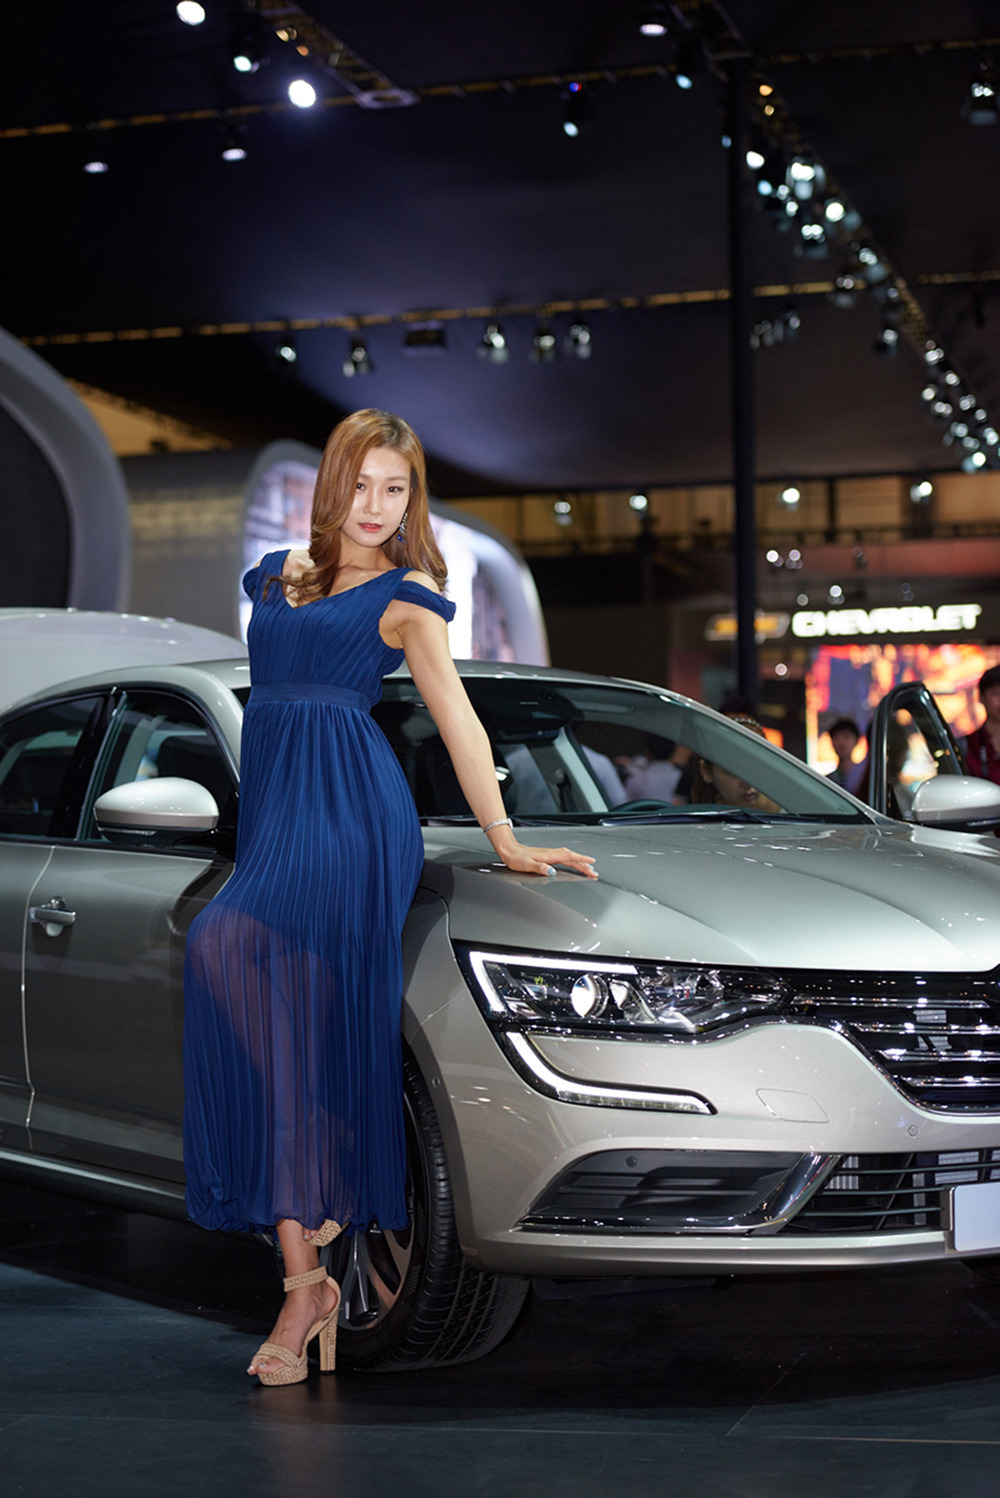 Renault Samsung Model - 김지연